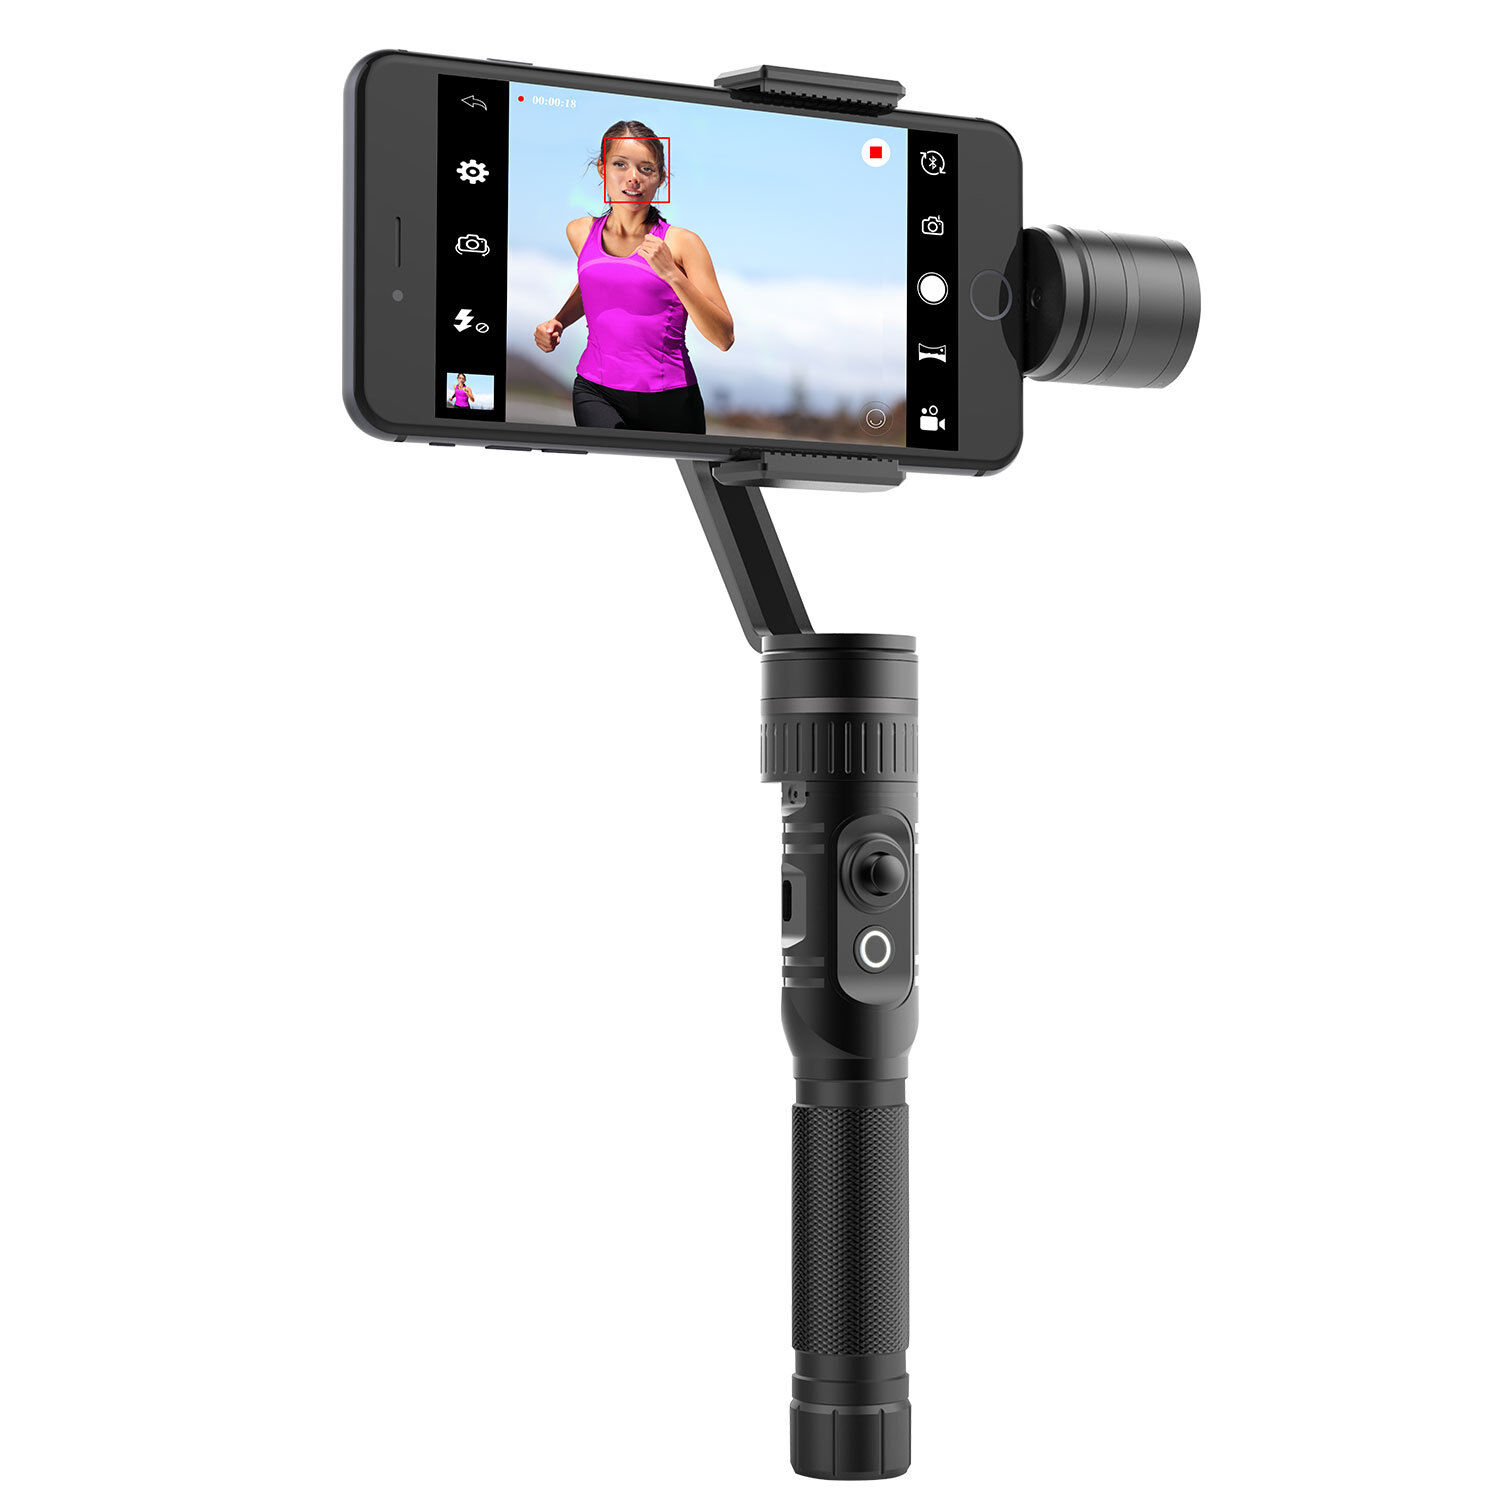 Stabilizer Gimbal for Smartphone Vlog,Portable Bluetooth 3-Axis Handheld Stabilizer with QI Wireless Charging Function,High-performance Algorithm for Anti-interference and Photography Stabilization Effect